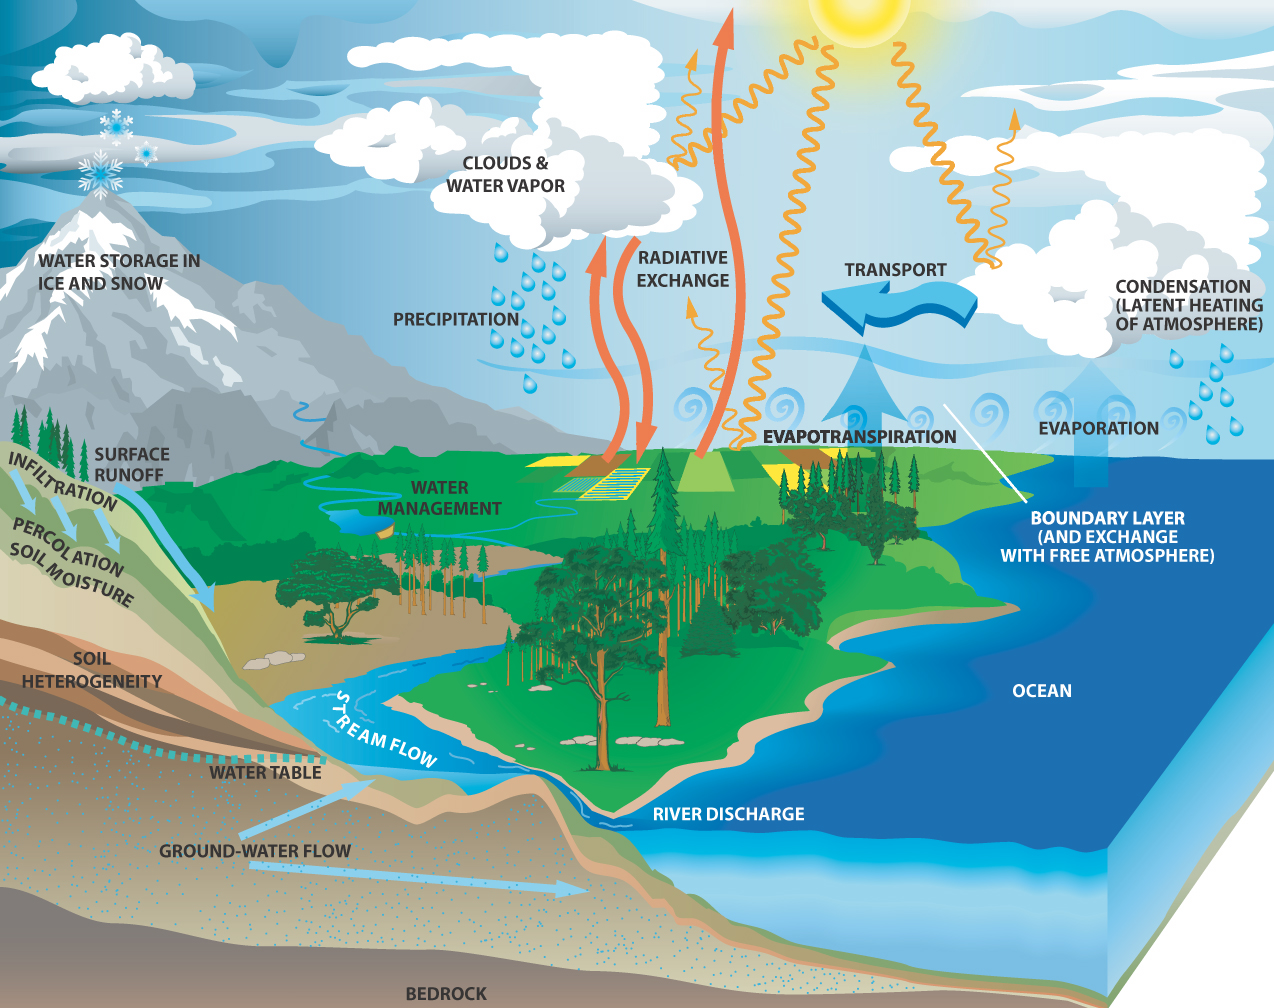 The water cycle diagram prentice hall block and schematic diagrams water cycle biology geology 4 eso 2011 12 rh bio4esobil2011 wordpress com simple water cycle diagram water cycle diagram label ccuart Gallery